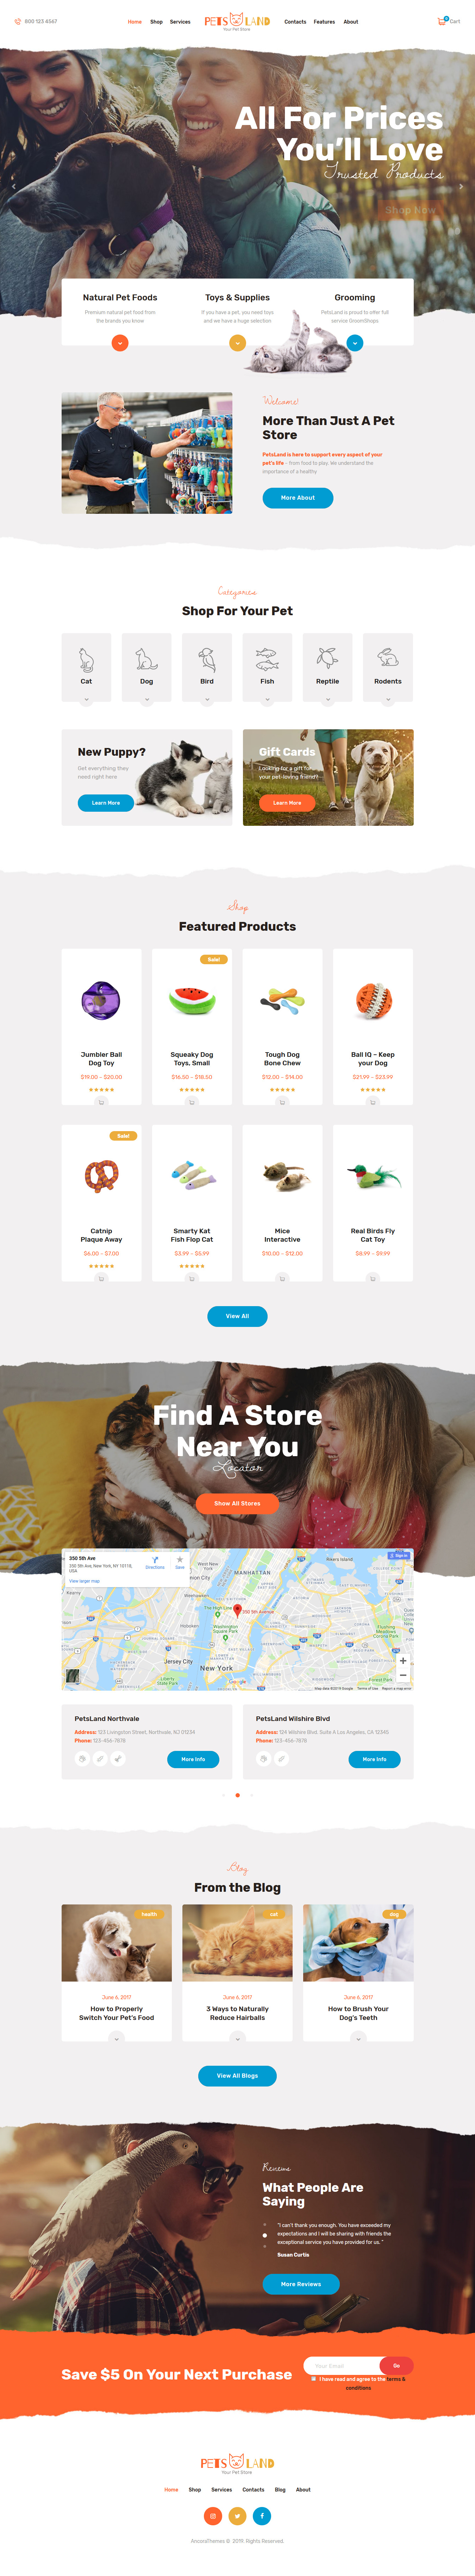 Pets Land - Best Premium Animal and Pet WordPress Theme